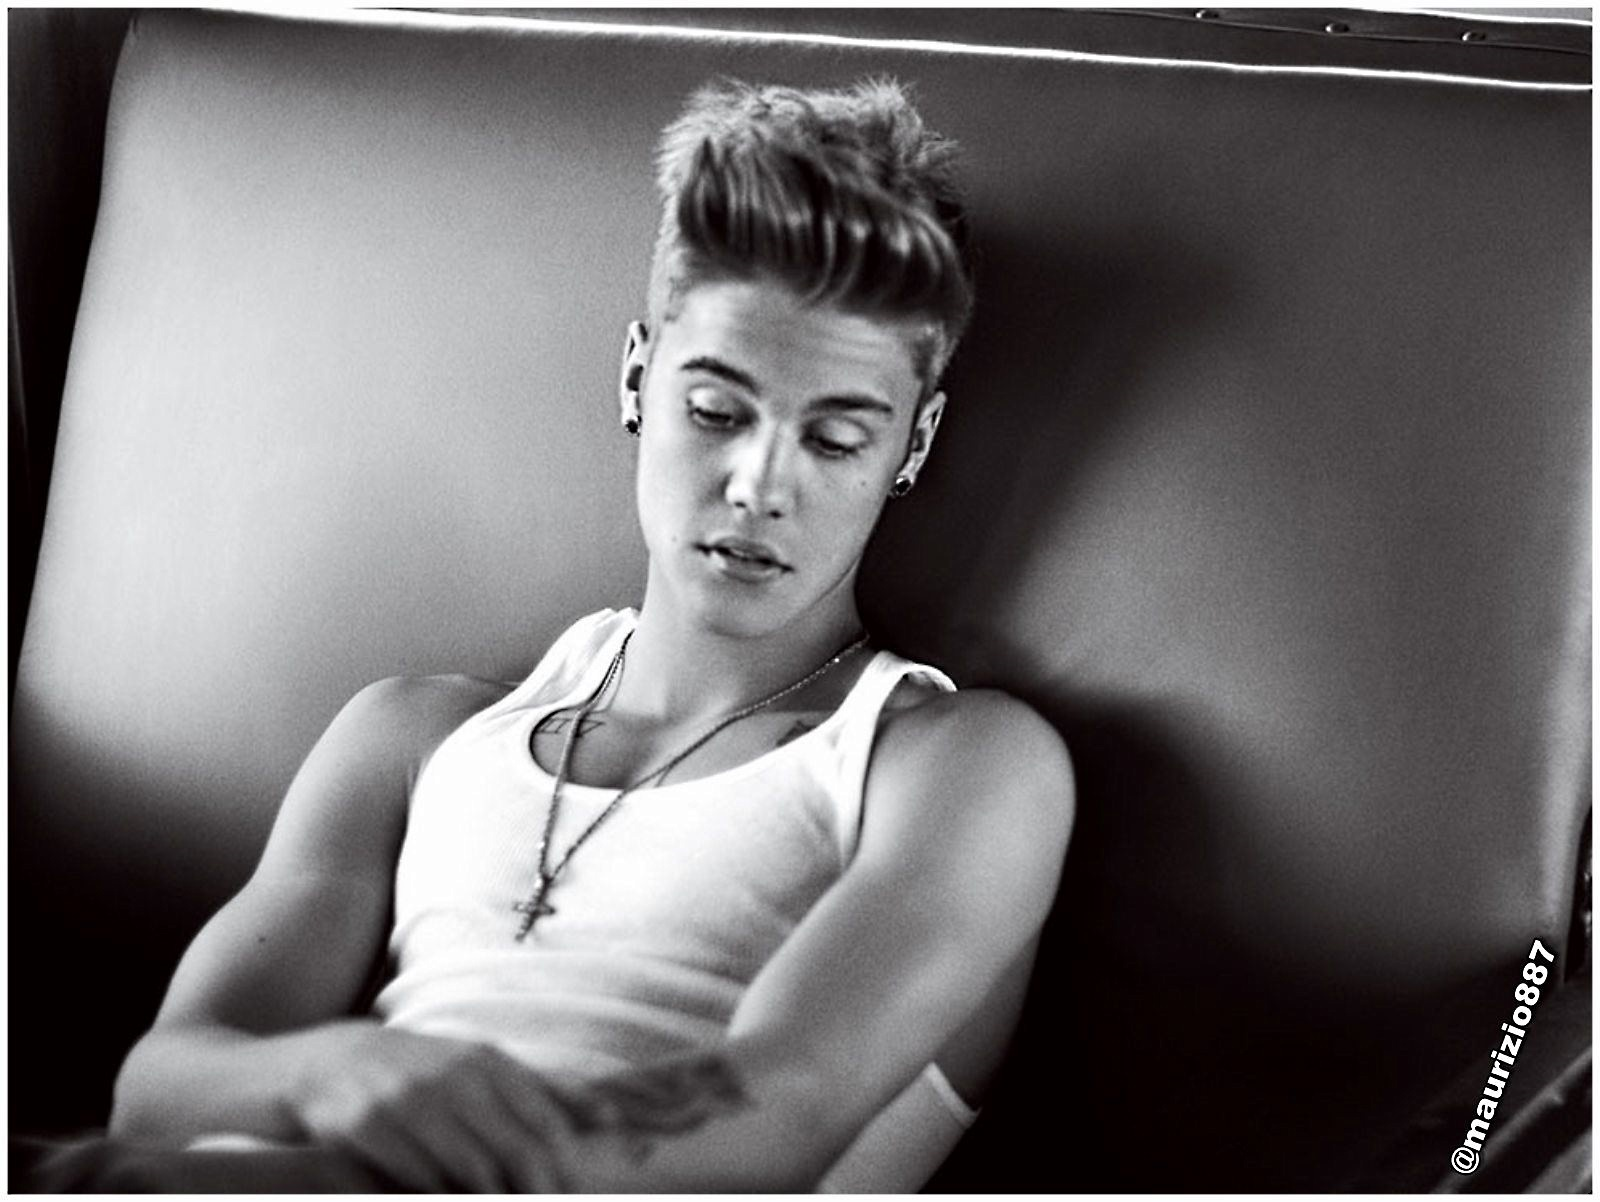 Black And White Justin Bieber Picture Image Desktop ...